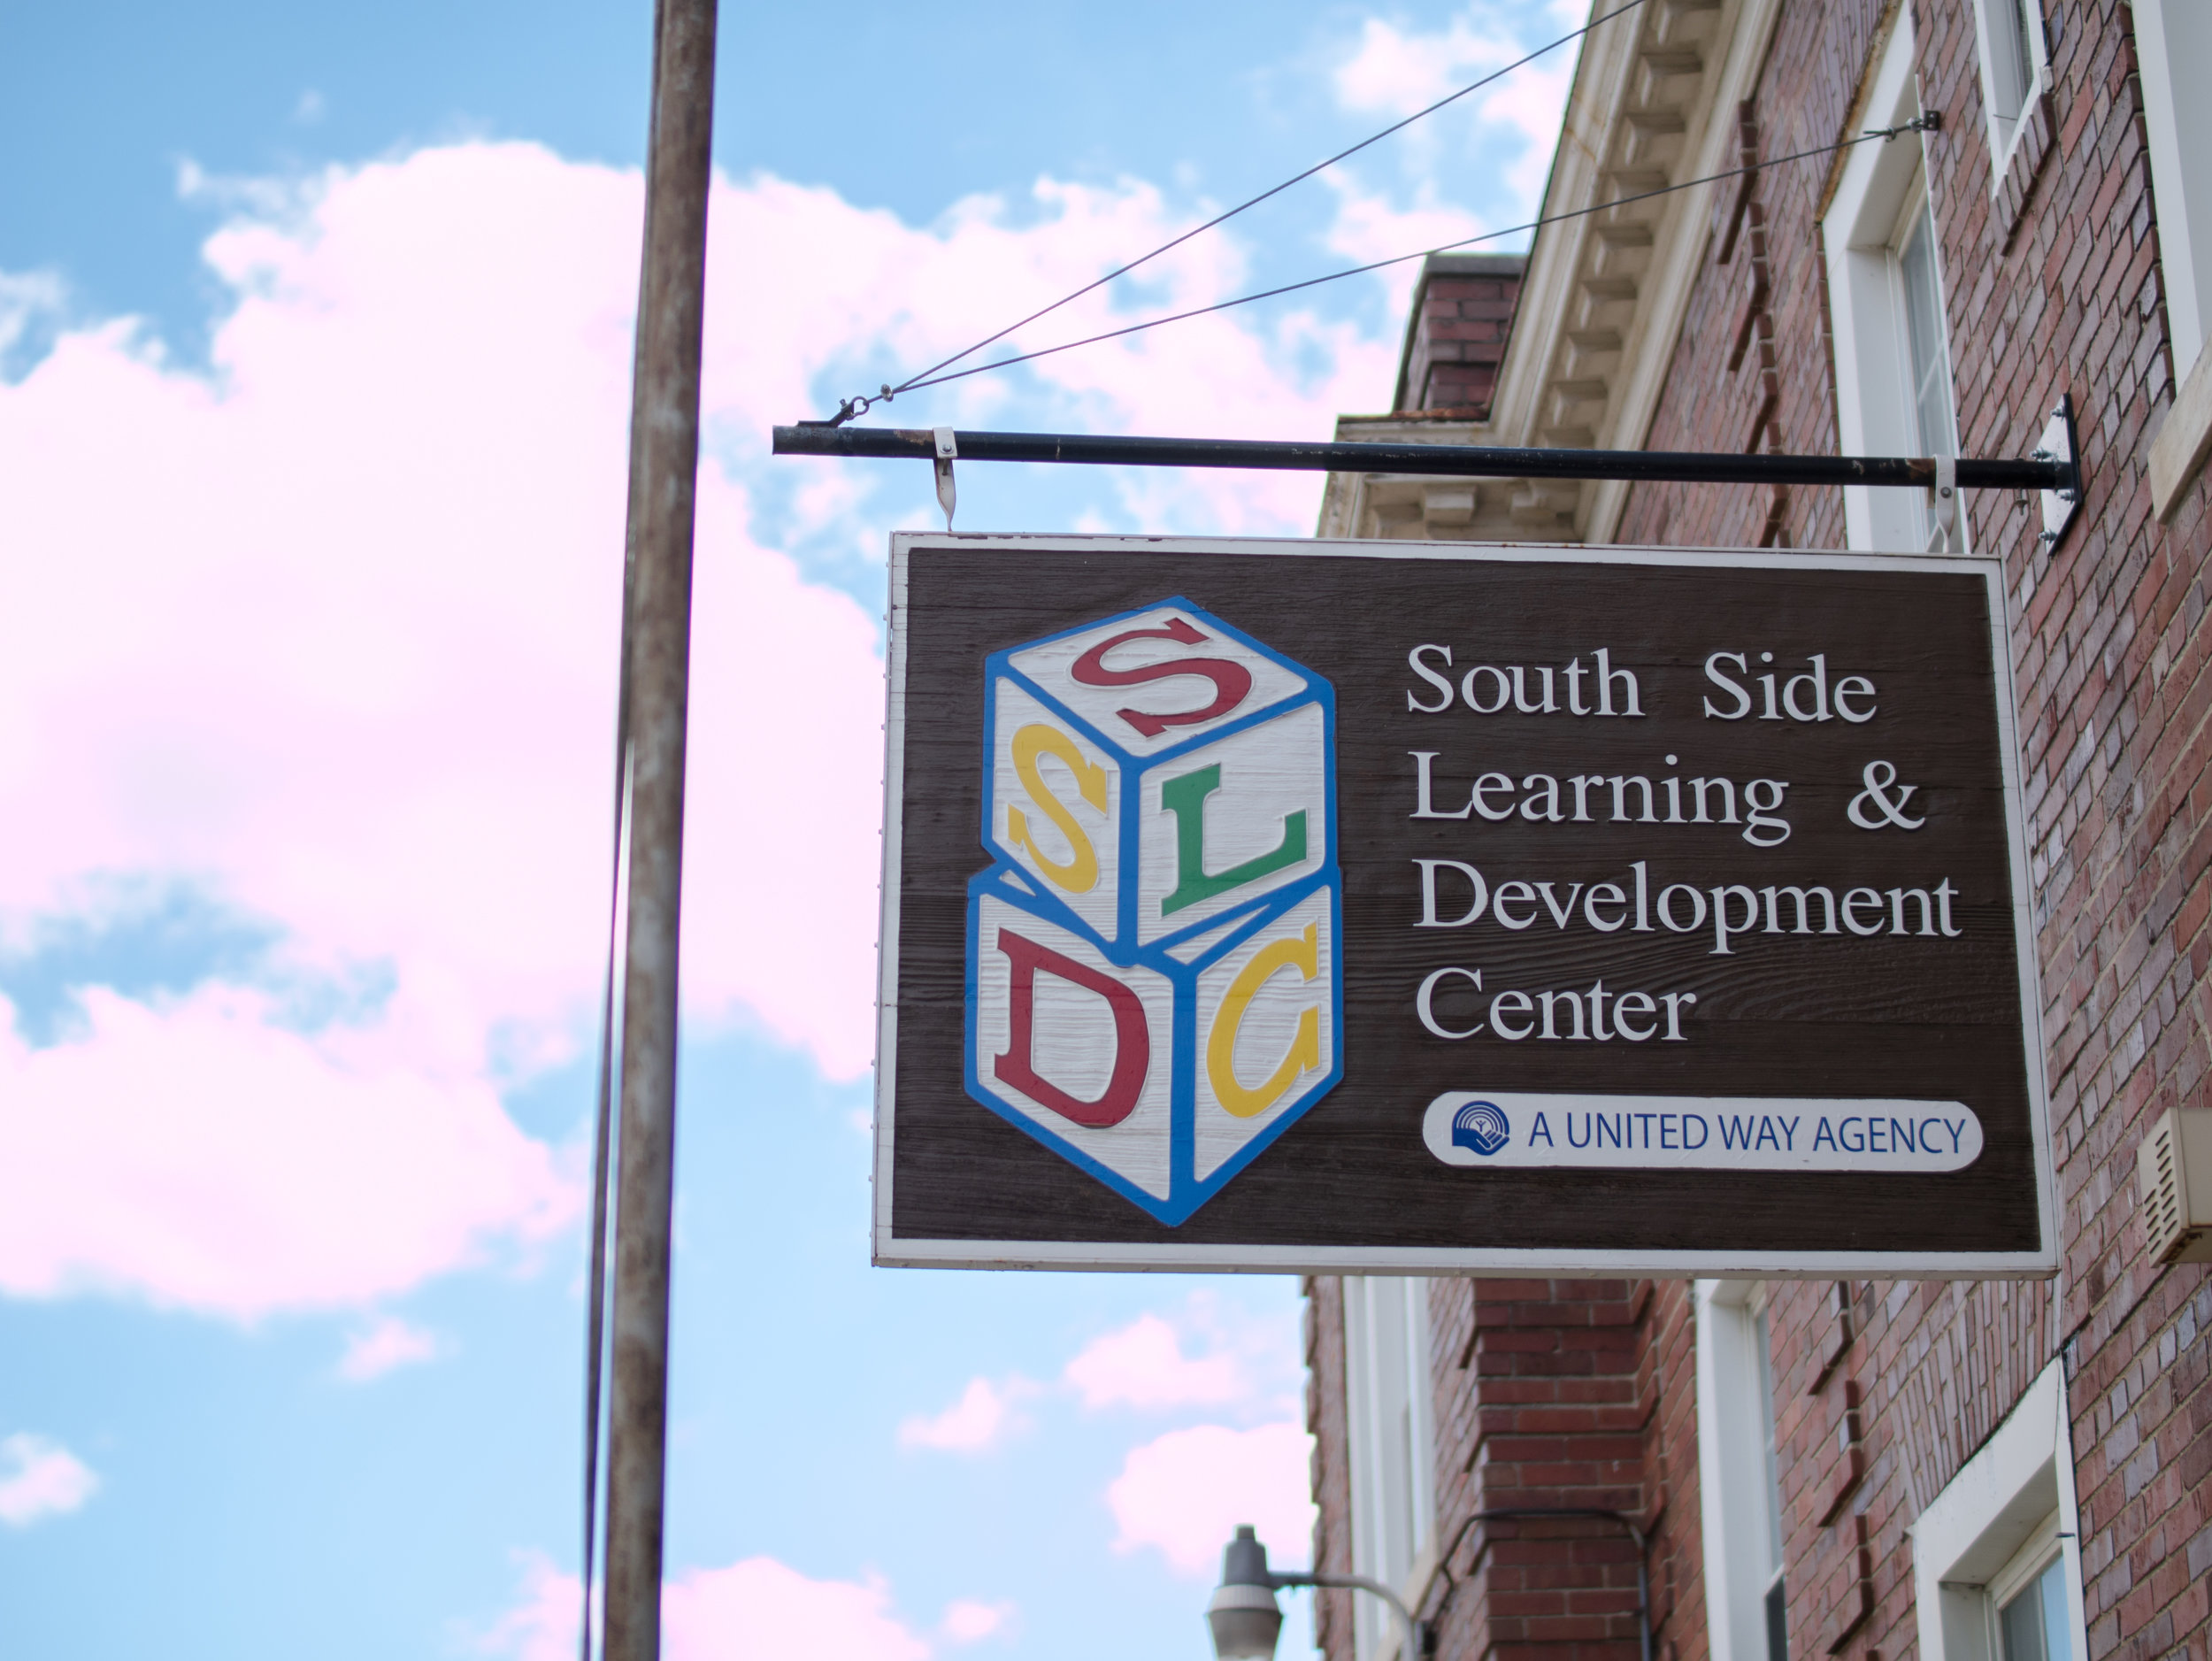 South Side Learning & Development Center